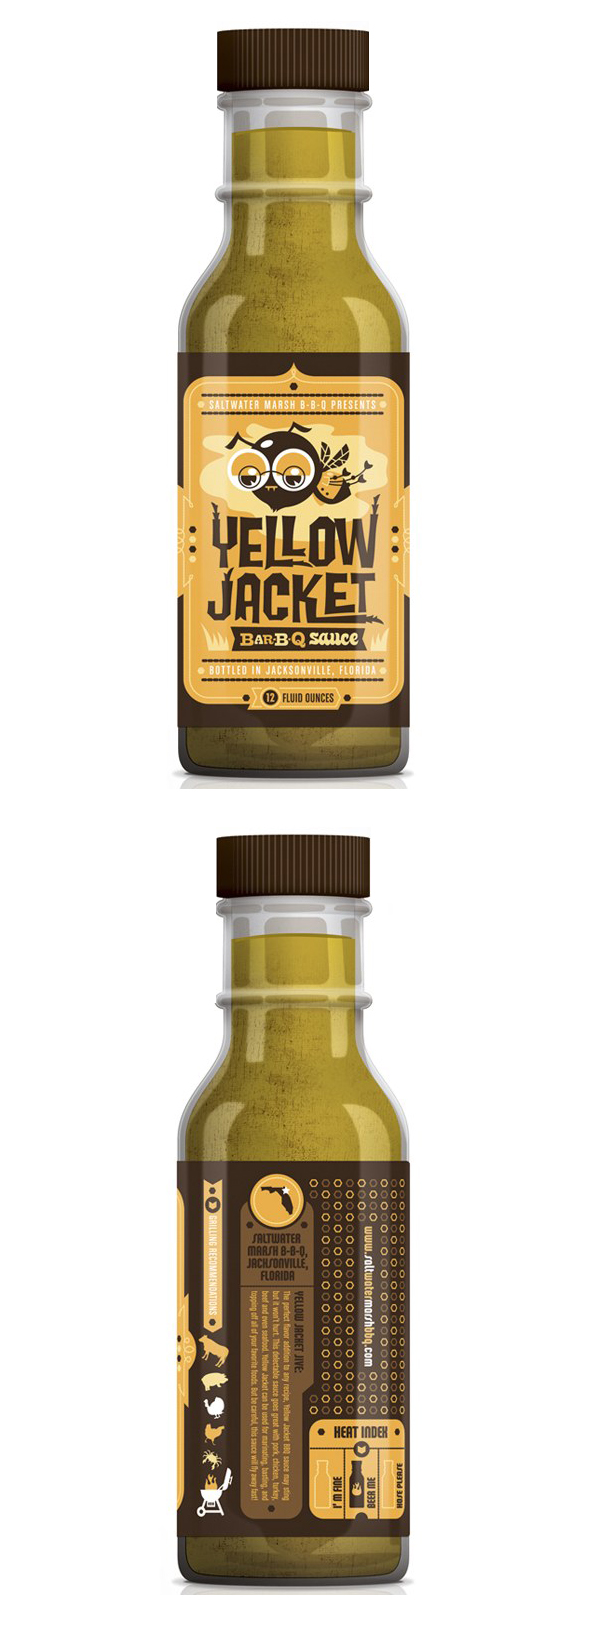 Yellow Jacket Bar-B-Q Sauce packaging by Kendrick Kidd